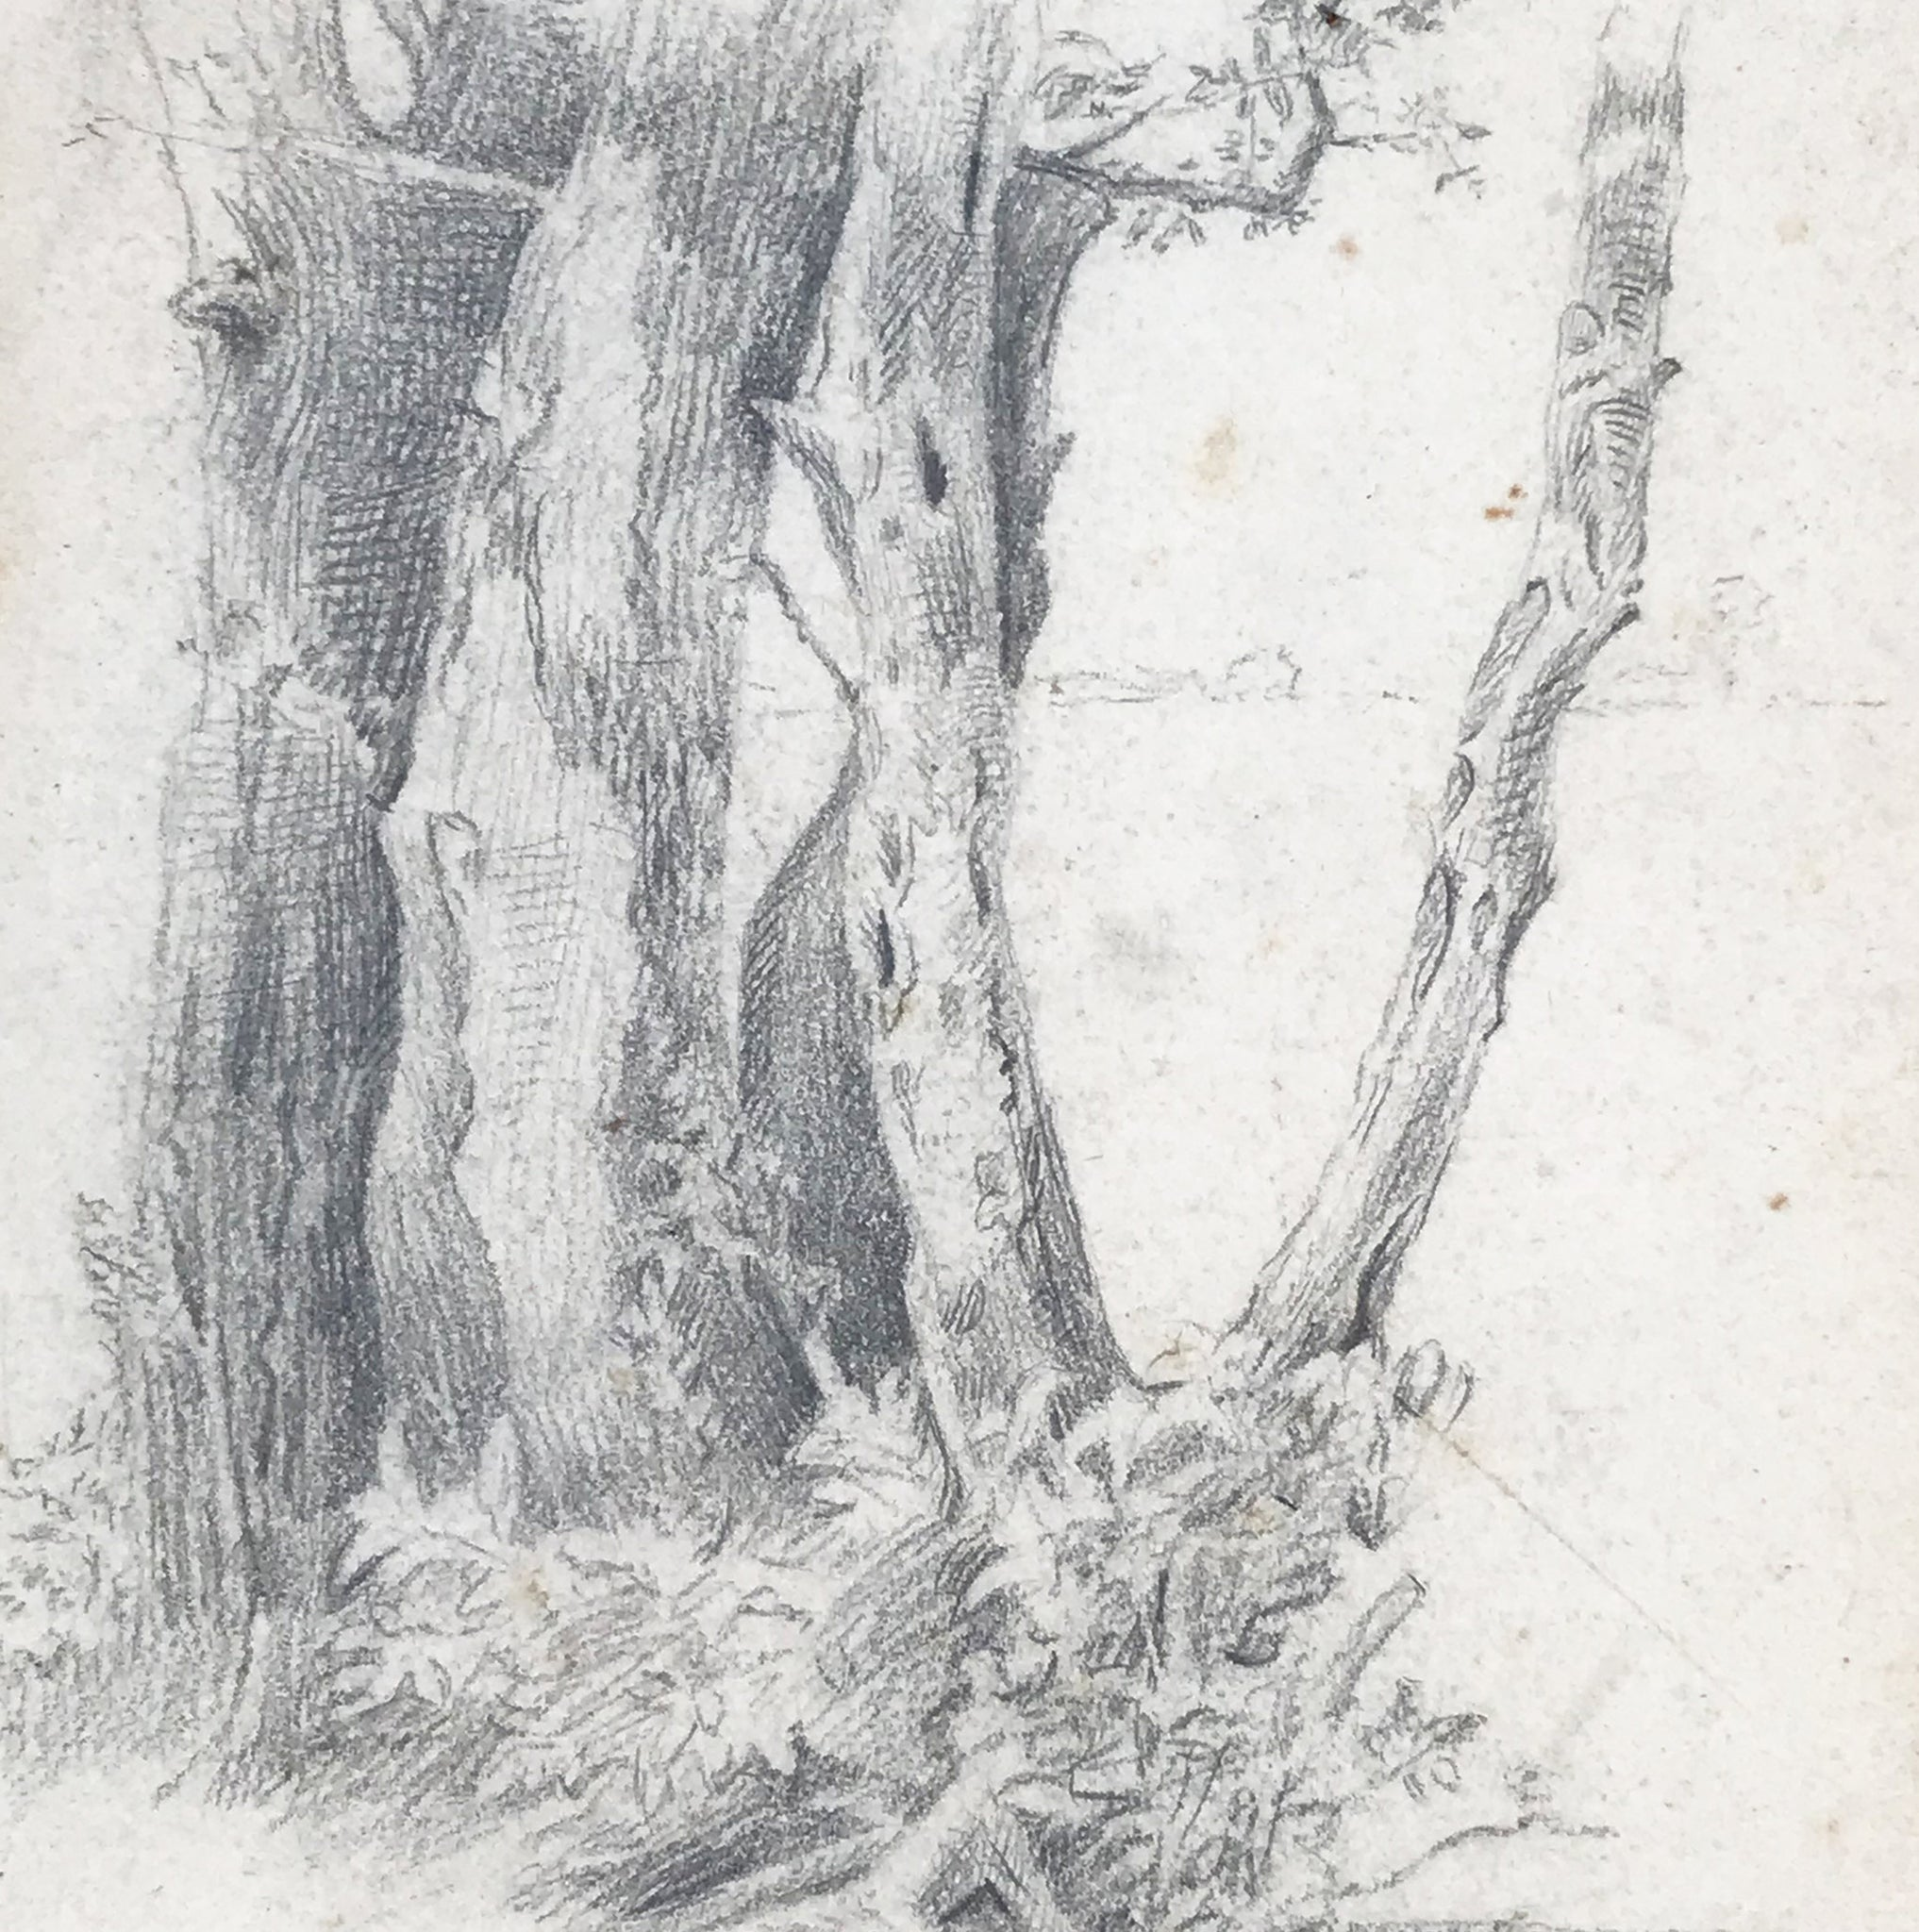 Nice pencil study of tree trunks. Signed 'Tottenham 23/5/19'. Find Art, Antique Etchings & other Antique Prints at IntoVintage.co.uk